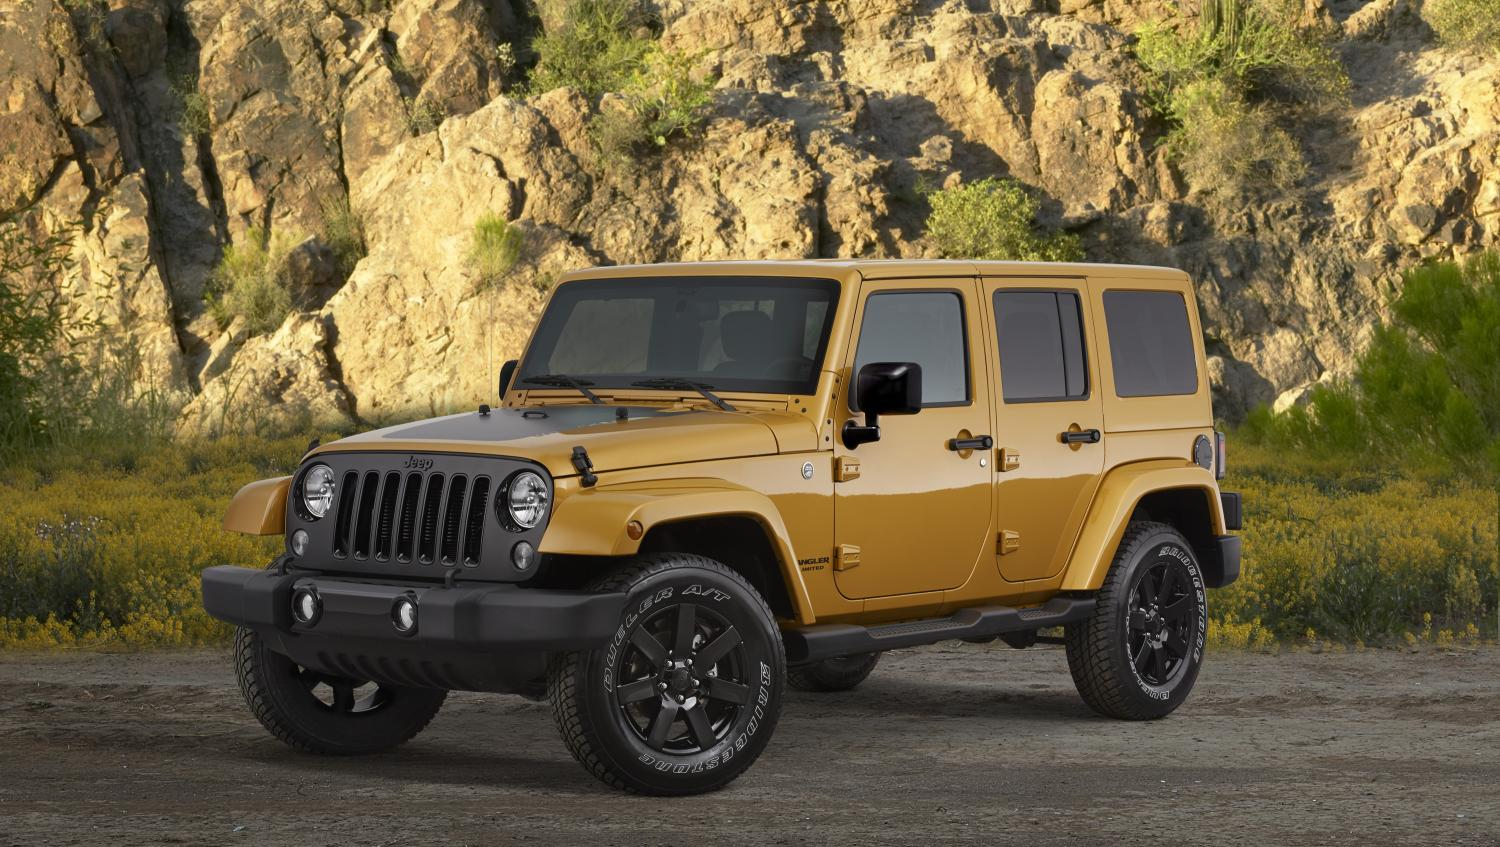 The Best Thing About Owning a Jeep   Chrysler Capital